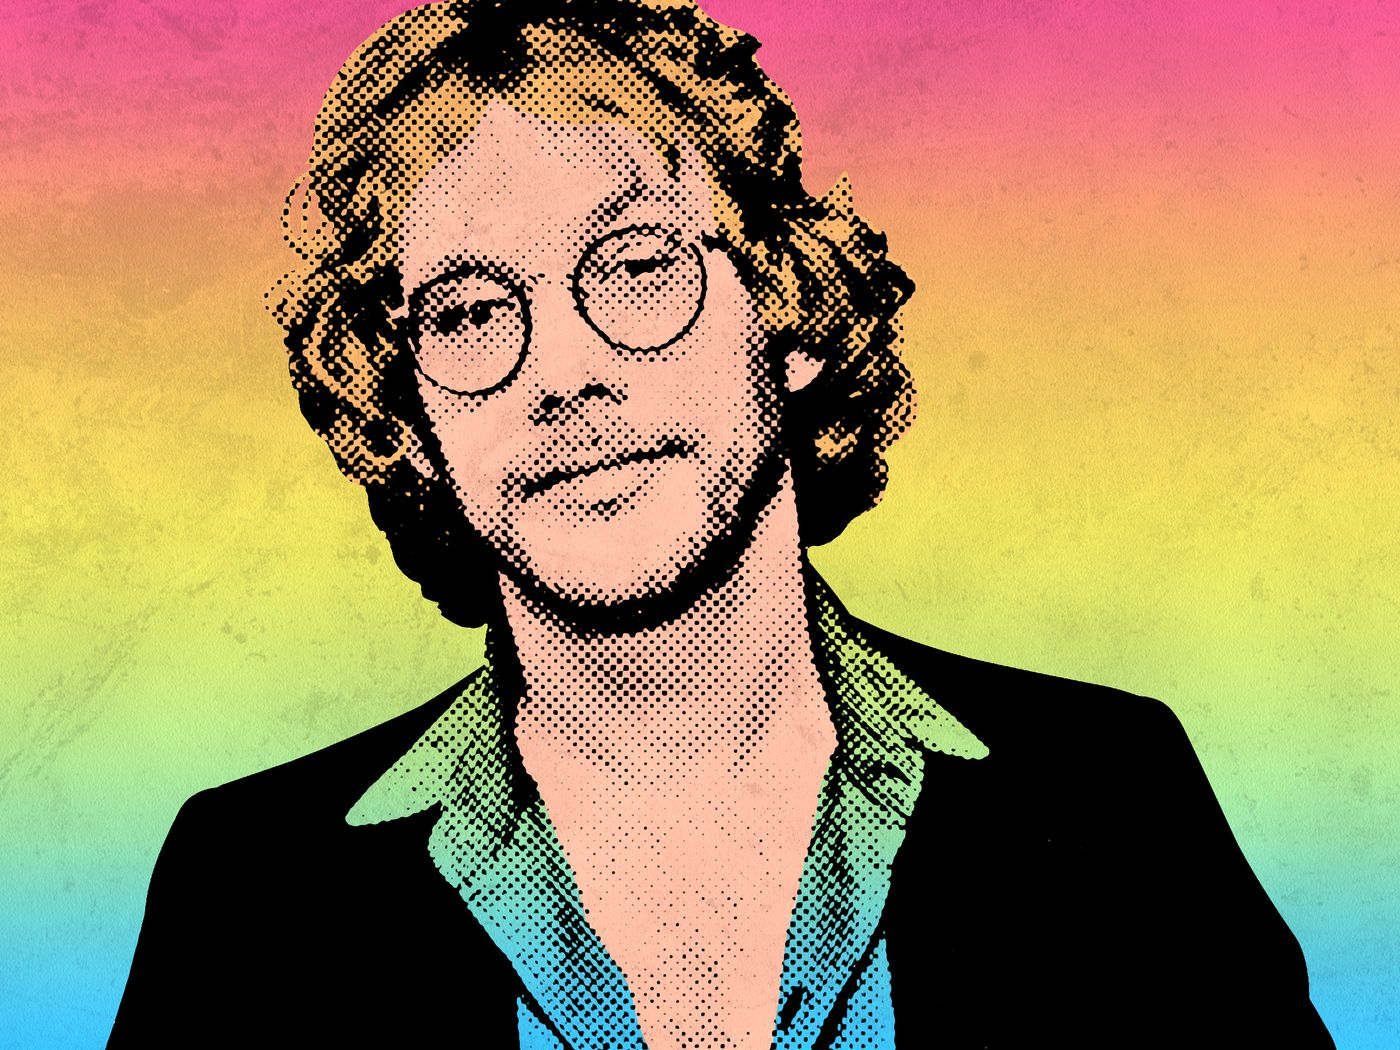 Untangling the Complicated Legacy of Warren Zevon - The Ringer